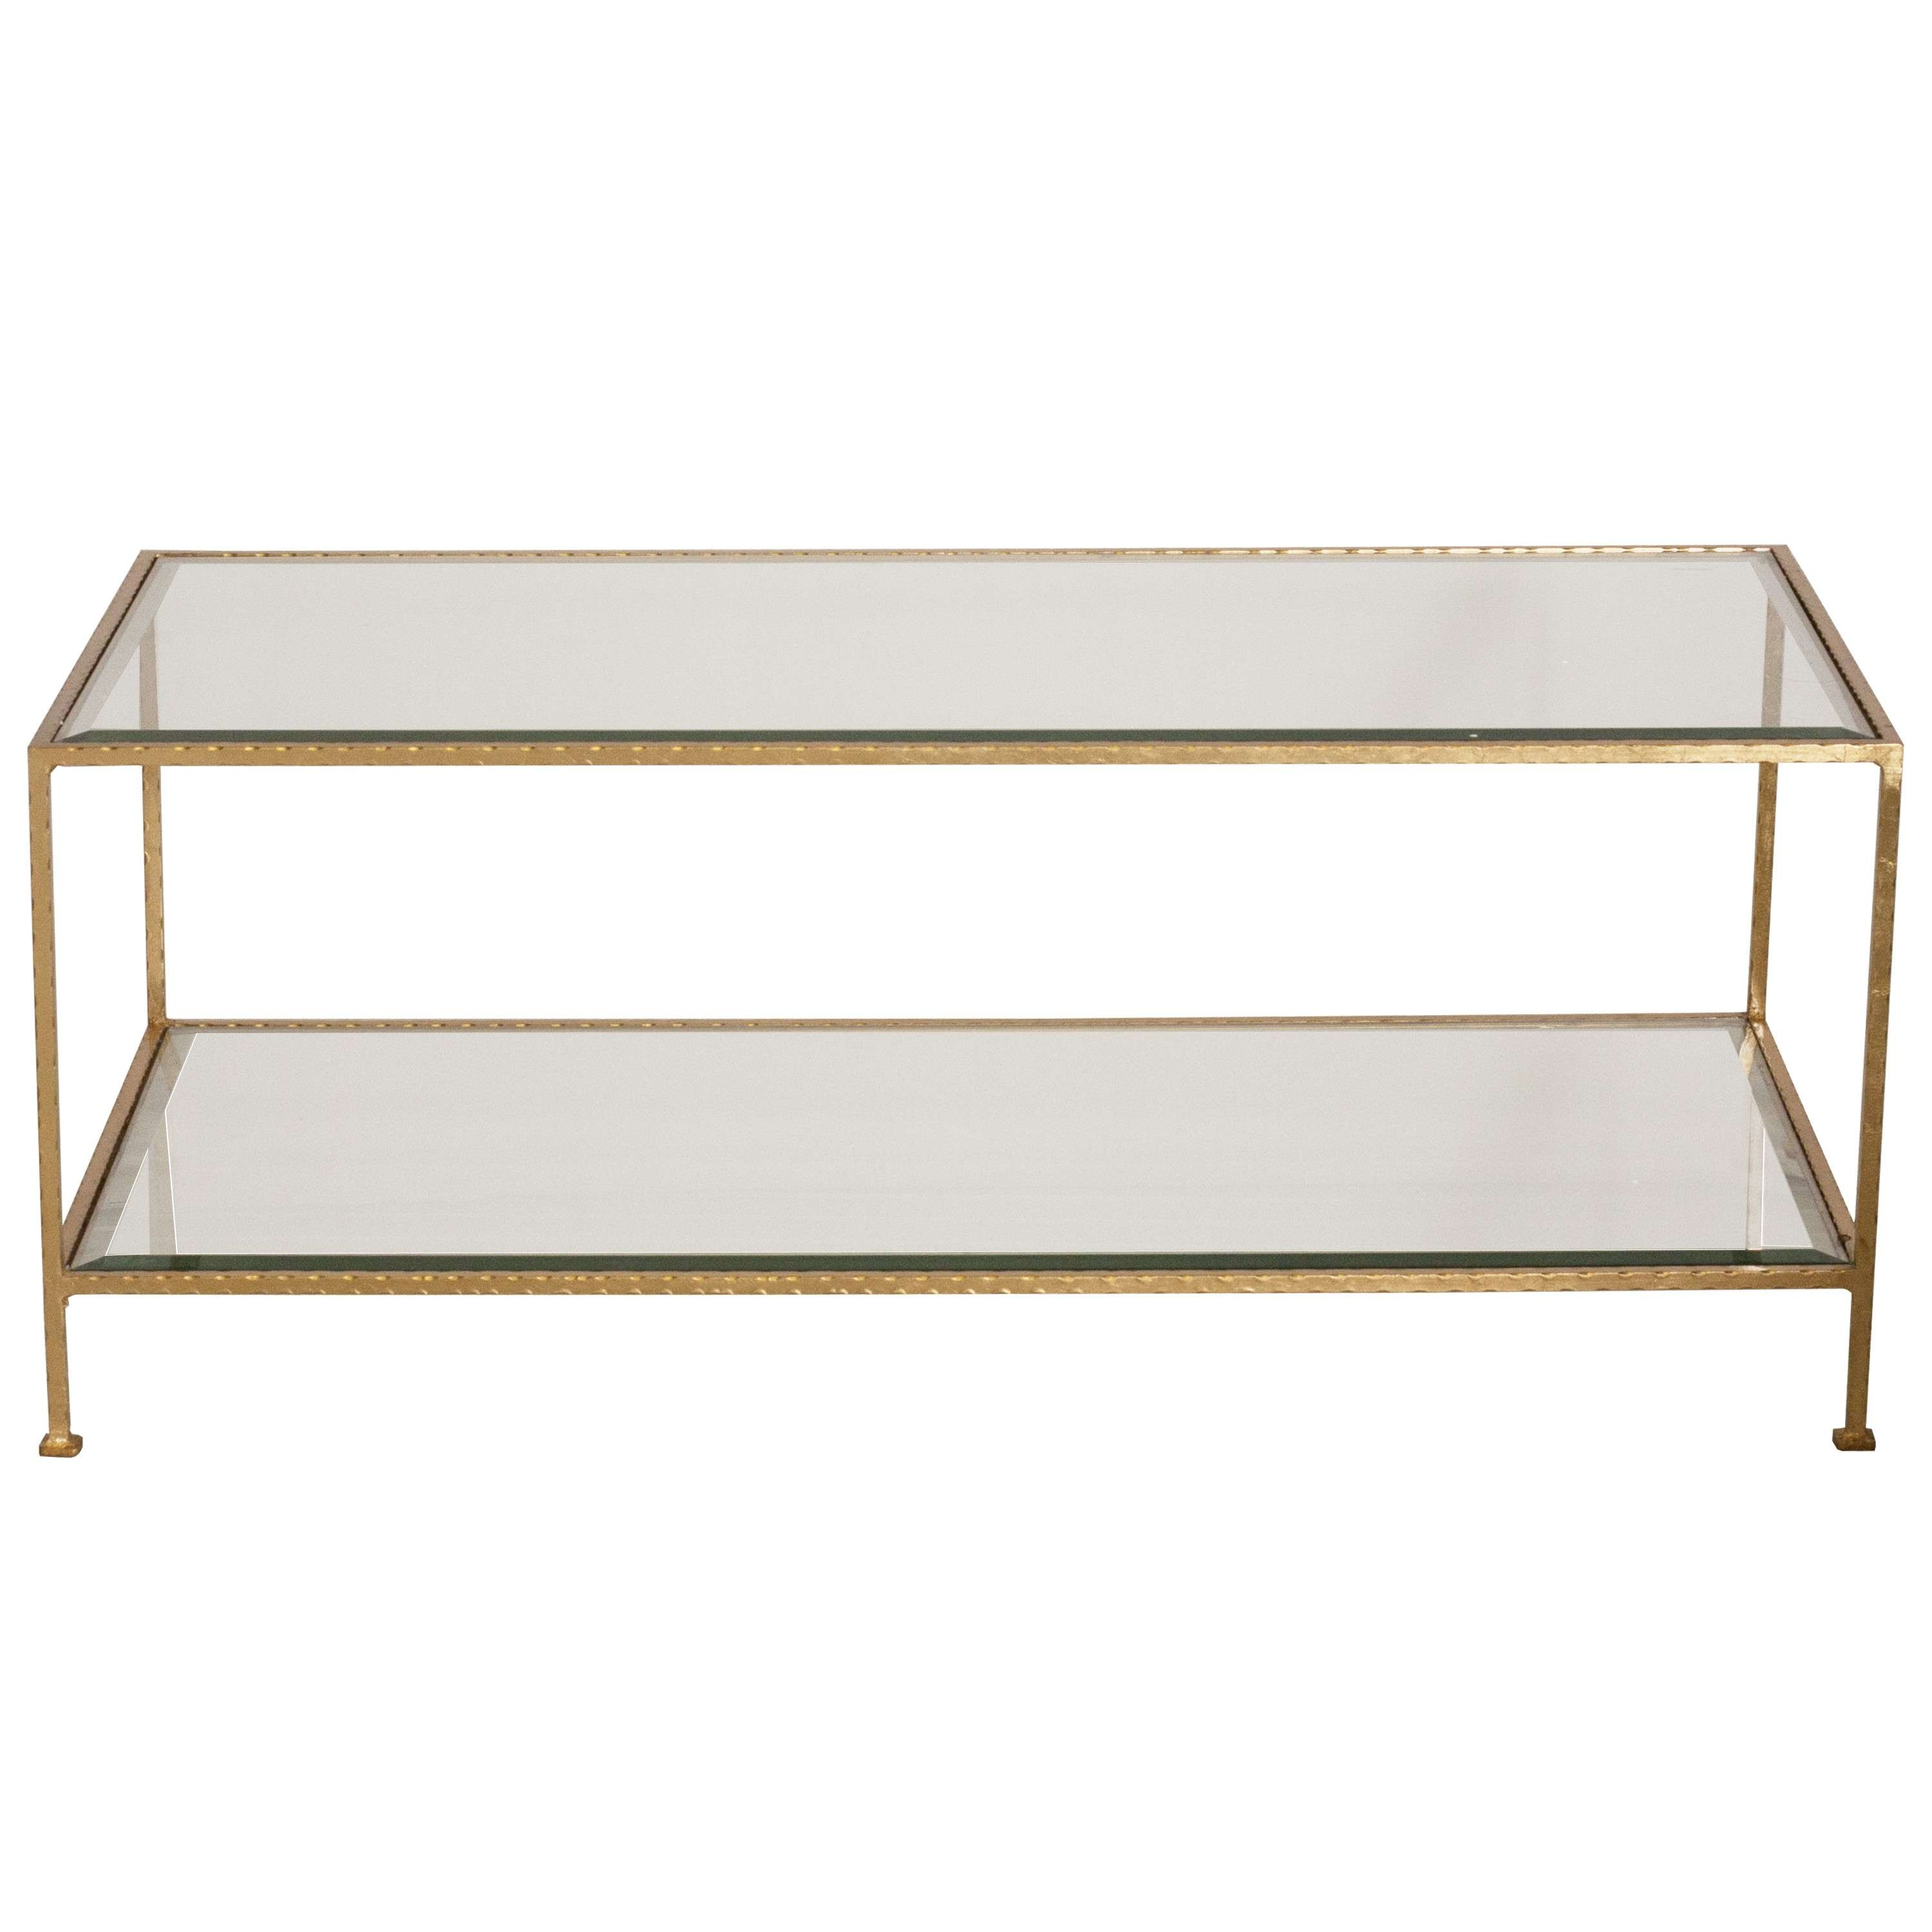 Coffee Tables : Elegant Clear And Golden Rectangle Traditional With Regard To Preferred Glass And Metal Coffee Tables (View 4 of 20)